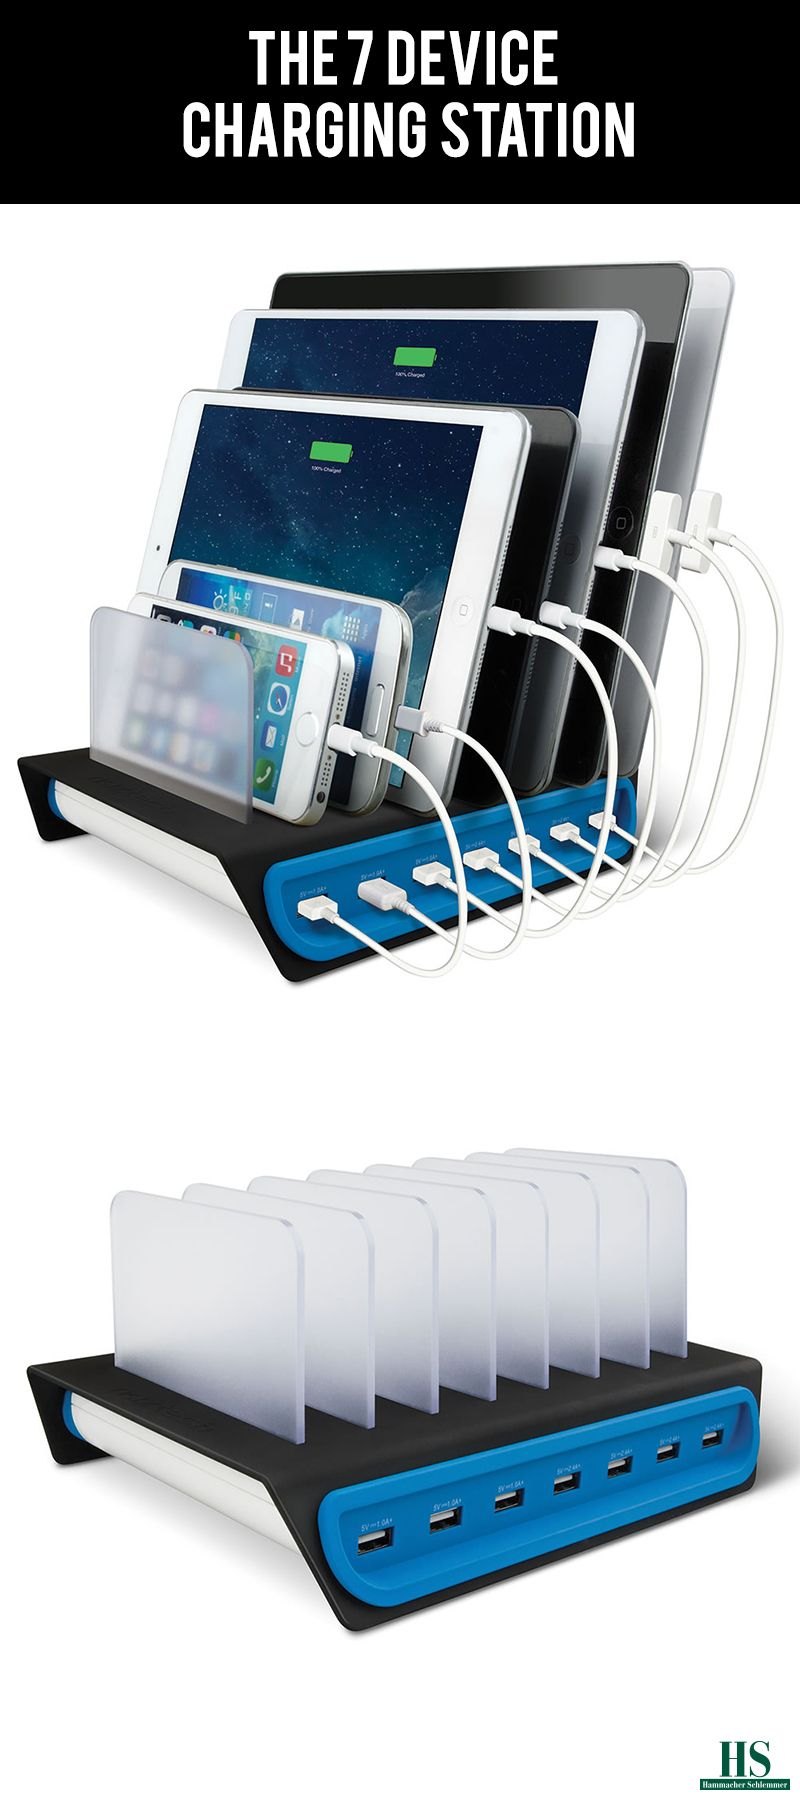 This Is The Charging Station That Supplies Power To Seven Usb Devices Simultaneously The Hub Electronic Charging Station Charging Station Electronics Storage